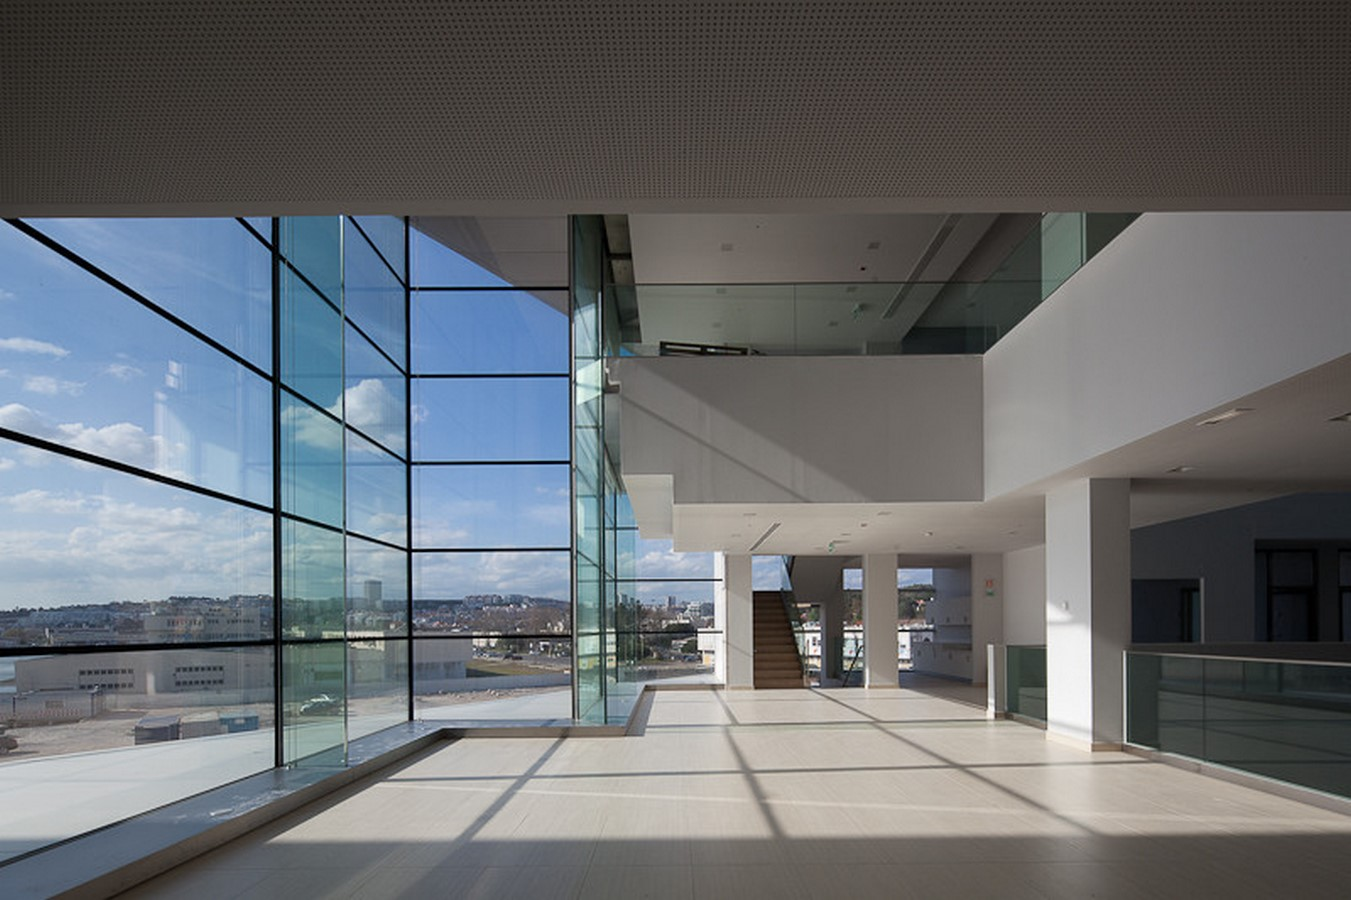 Champalimaud Centre by Charles Correa: Architecture as Beauty, Beauty as therapy - Sheet11